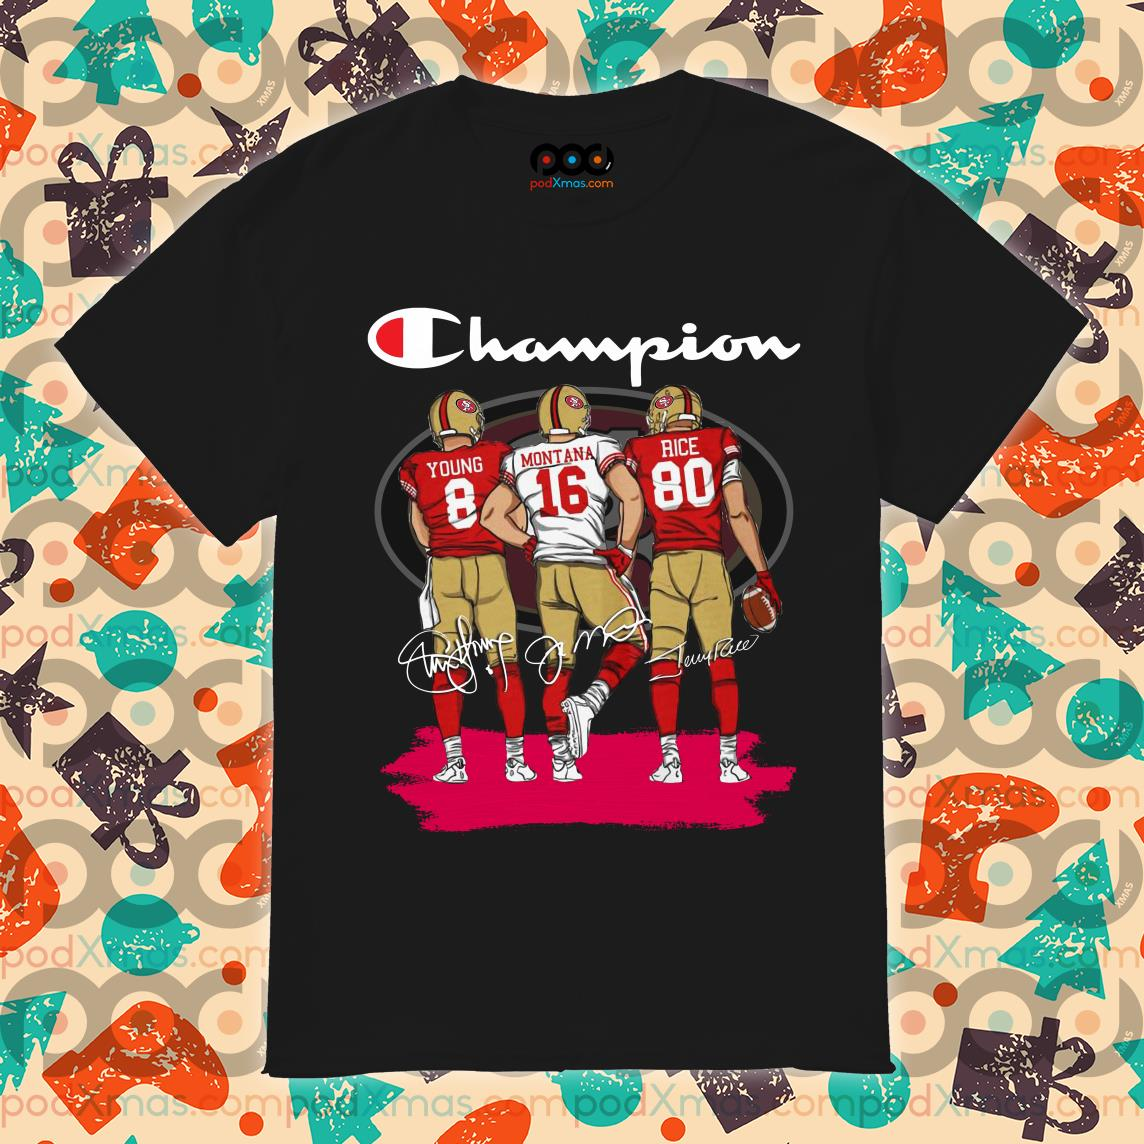 Champions San Francisco 49ers Young Montana Rice signatures shirt